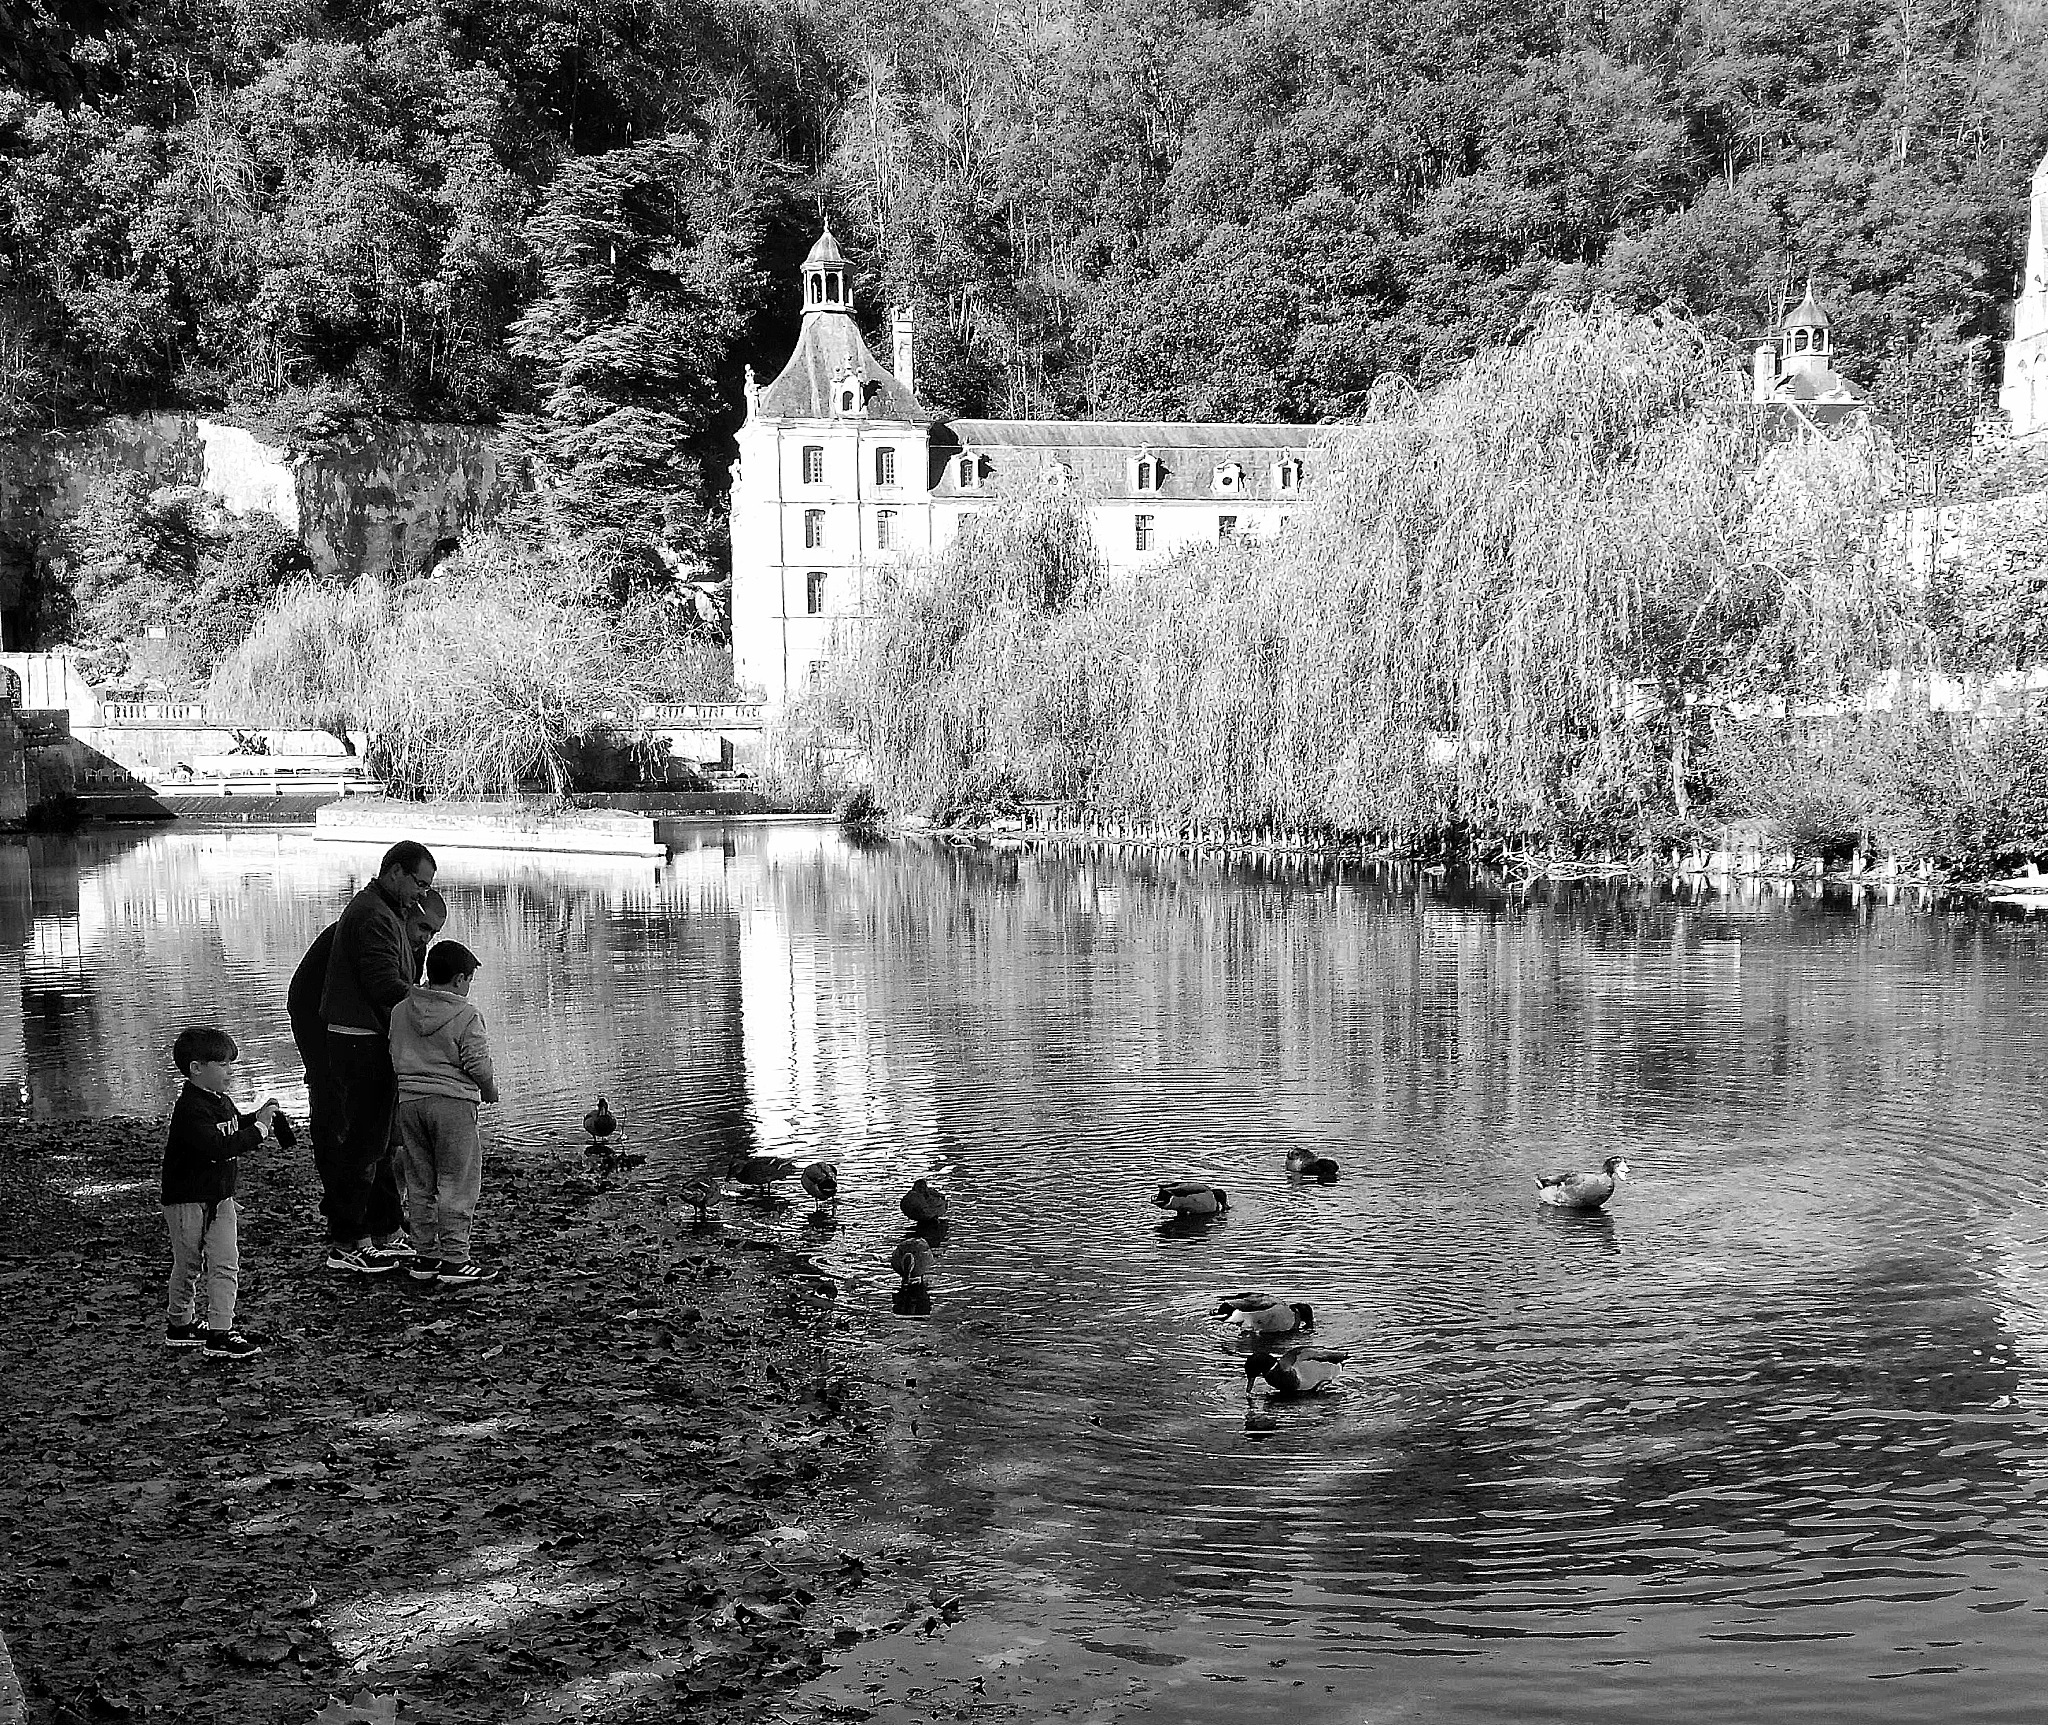 A morning at Brantôme  by Claudia Farolfi